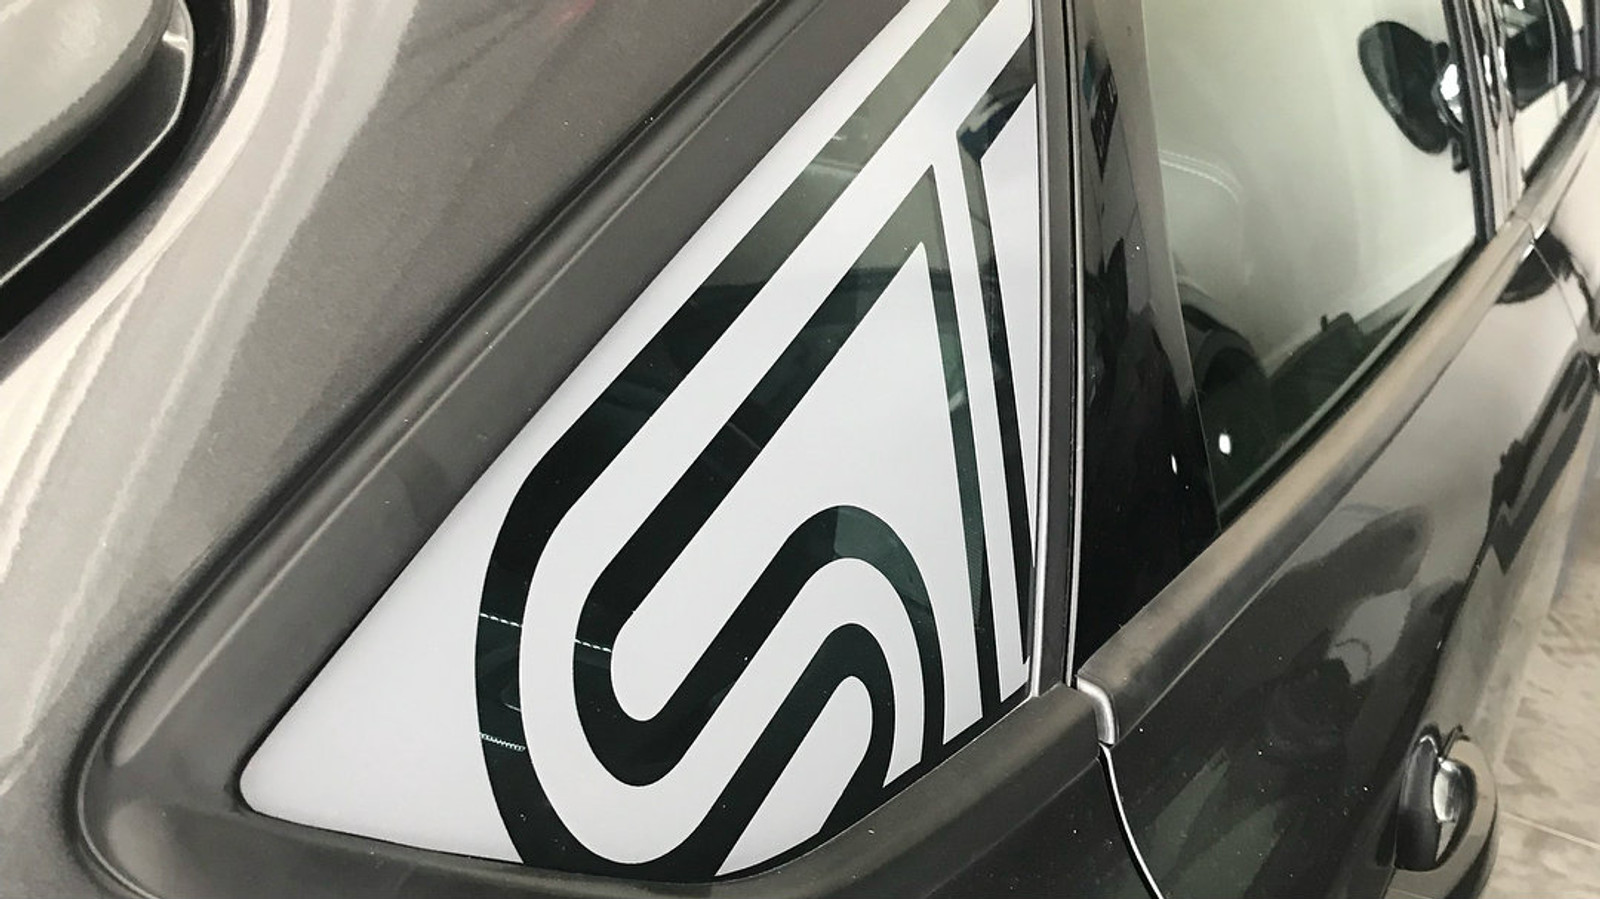 ST Quarter Window Decal posted by @no.st_andardmk3